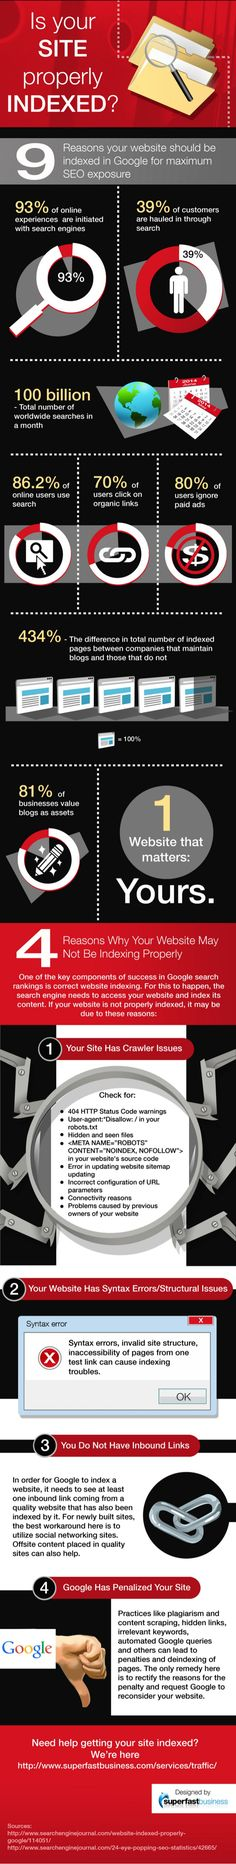 Is your site properly indexed? #SEO #infographic #infografía